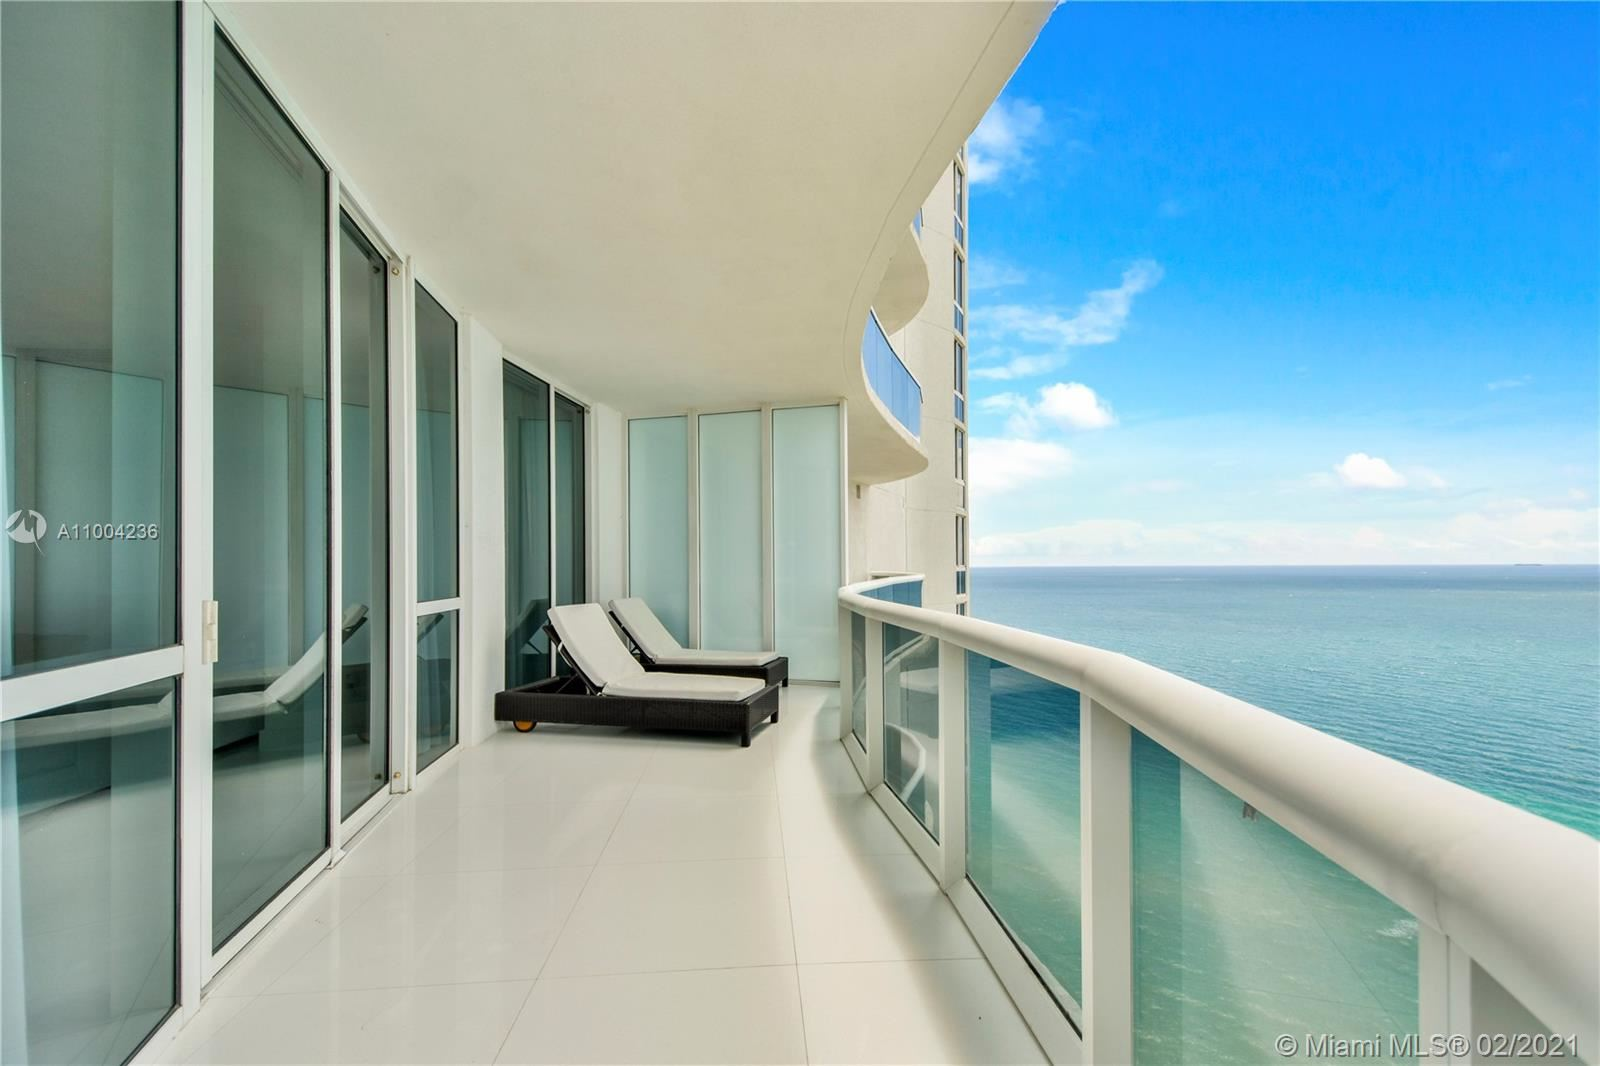 15811 Collins Ave #2307, Sunny Isles, FL 33160 - #: A11004236